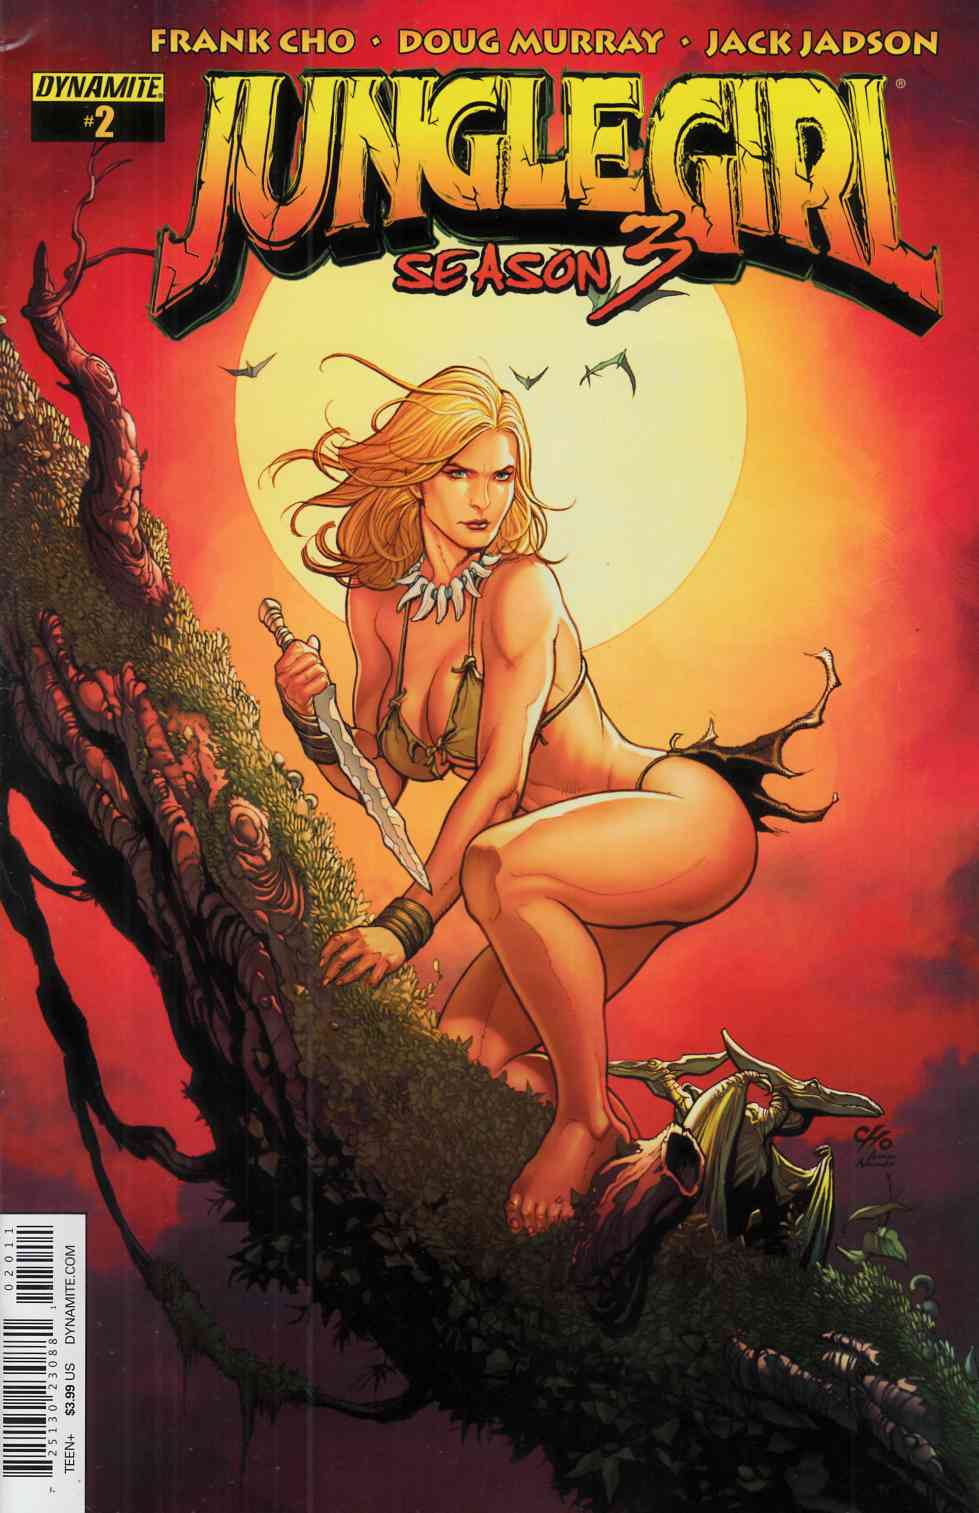 Jungle Girl Season 3 #2 [Dynamite Comic]